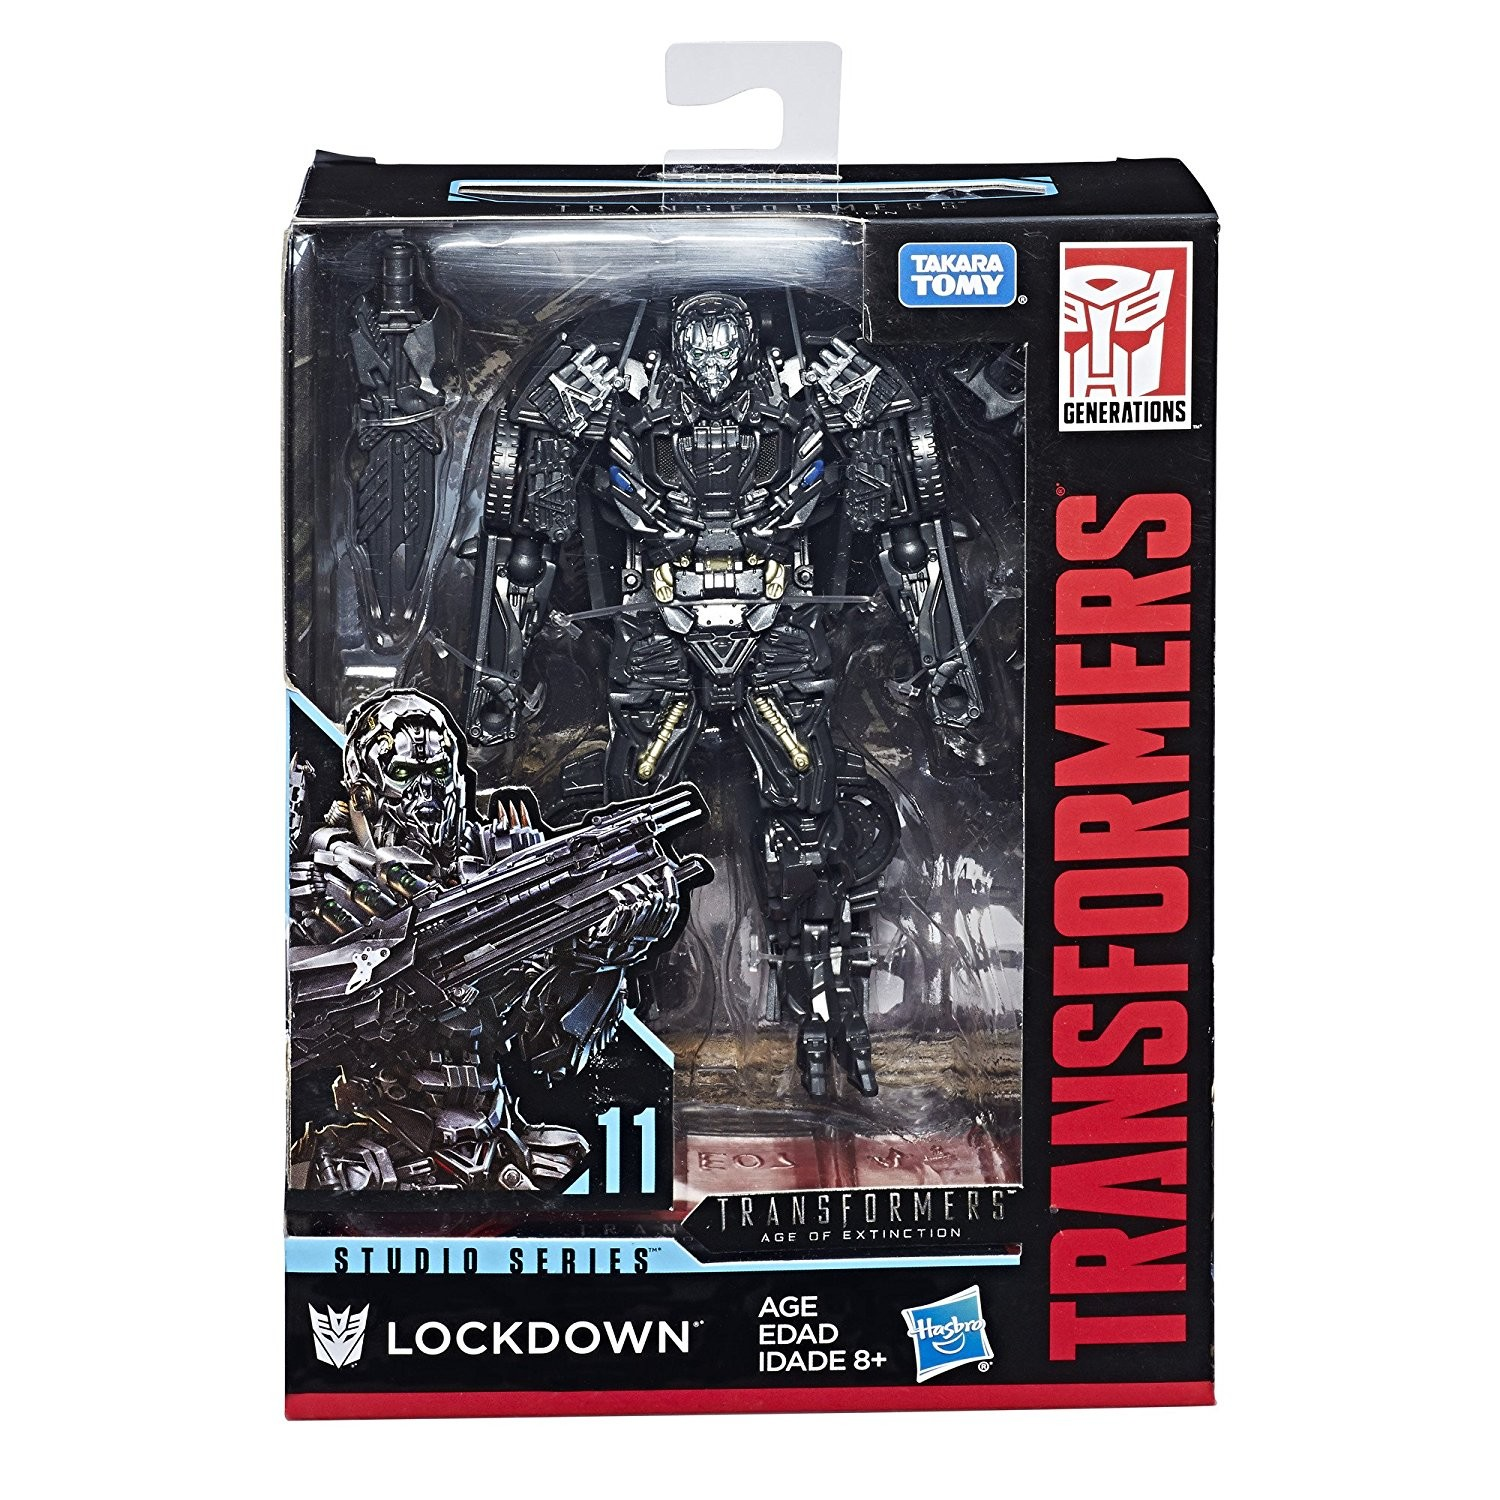 Final Product Stock Images of Transformers Studio Series ...